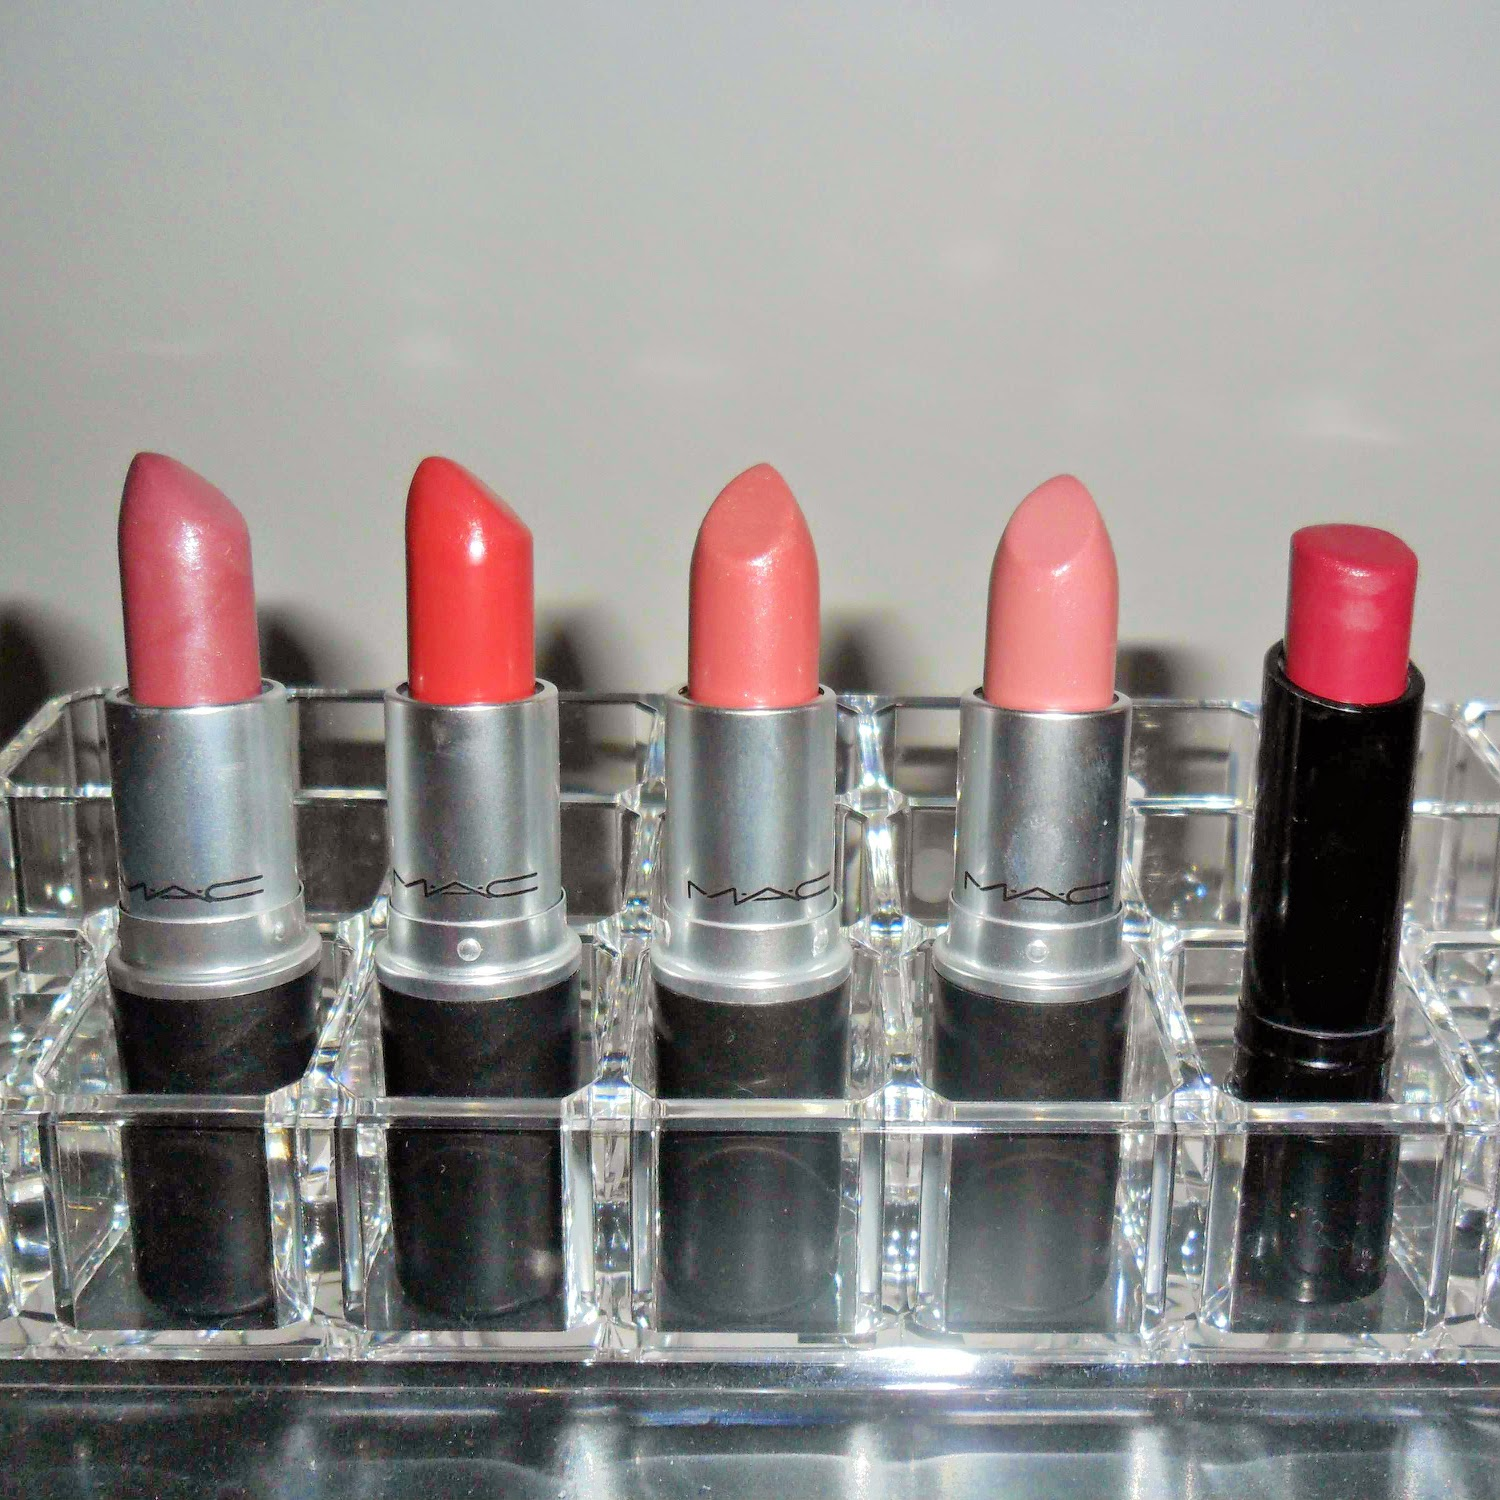 Best MAC lipsticks pale skin November 2014